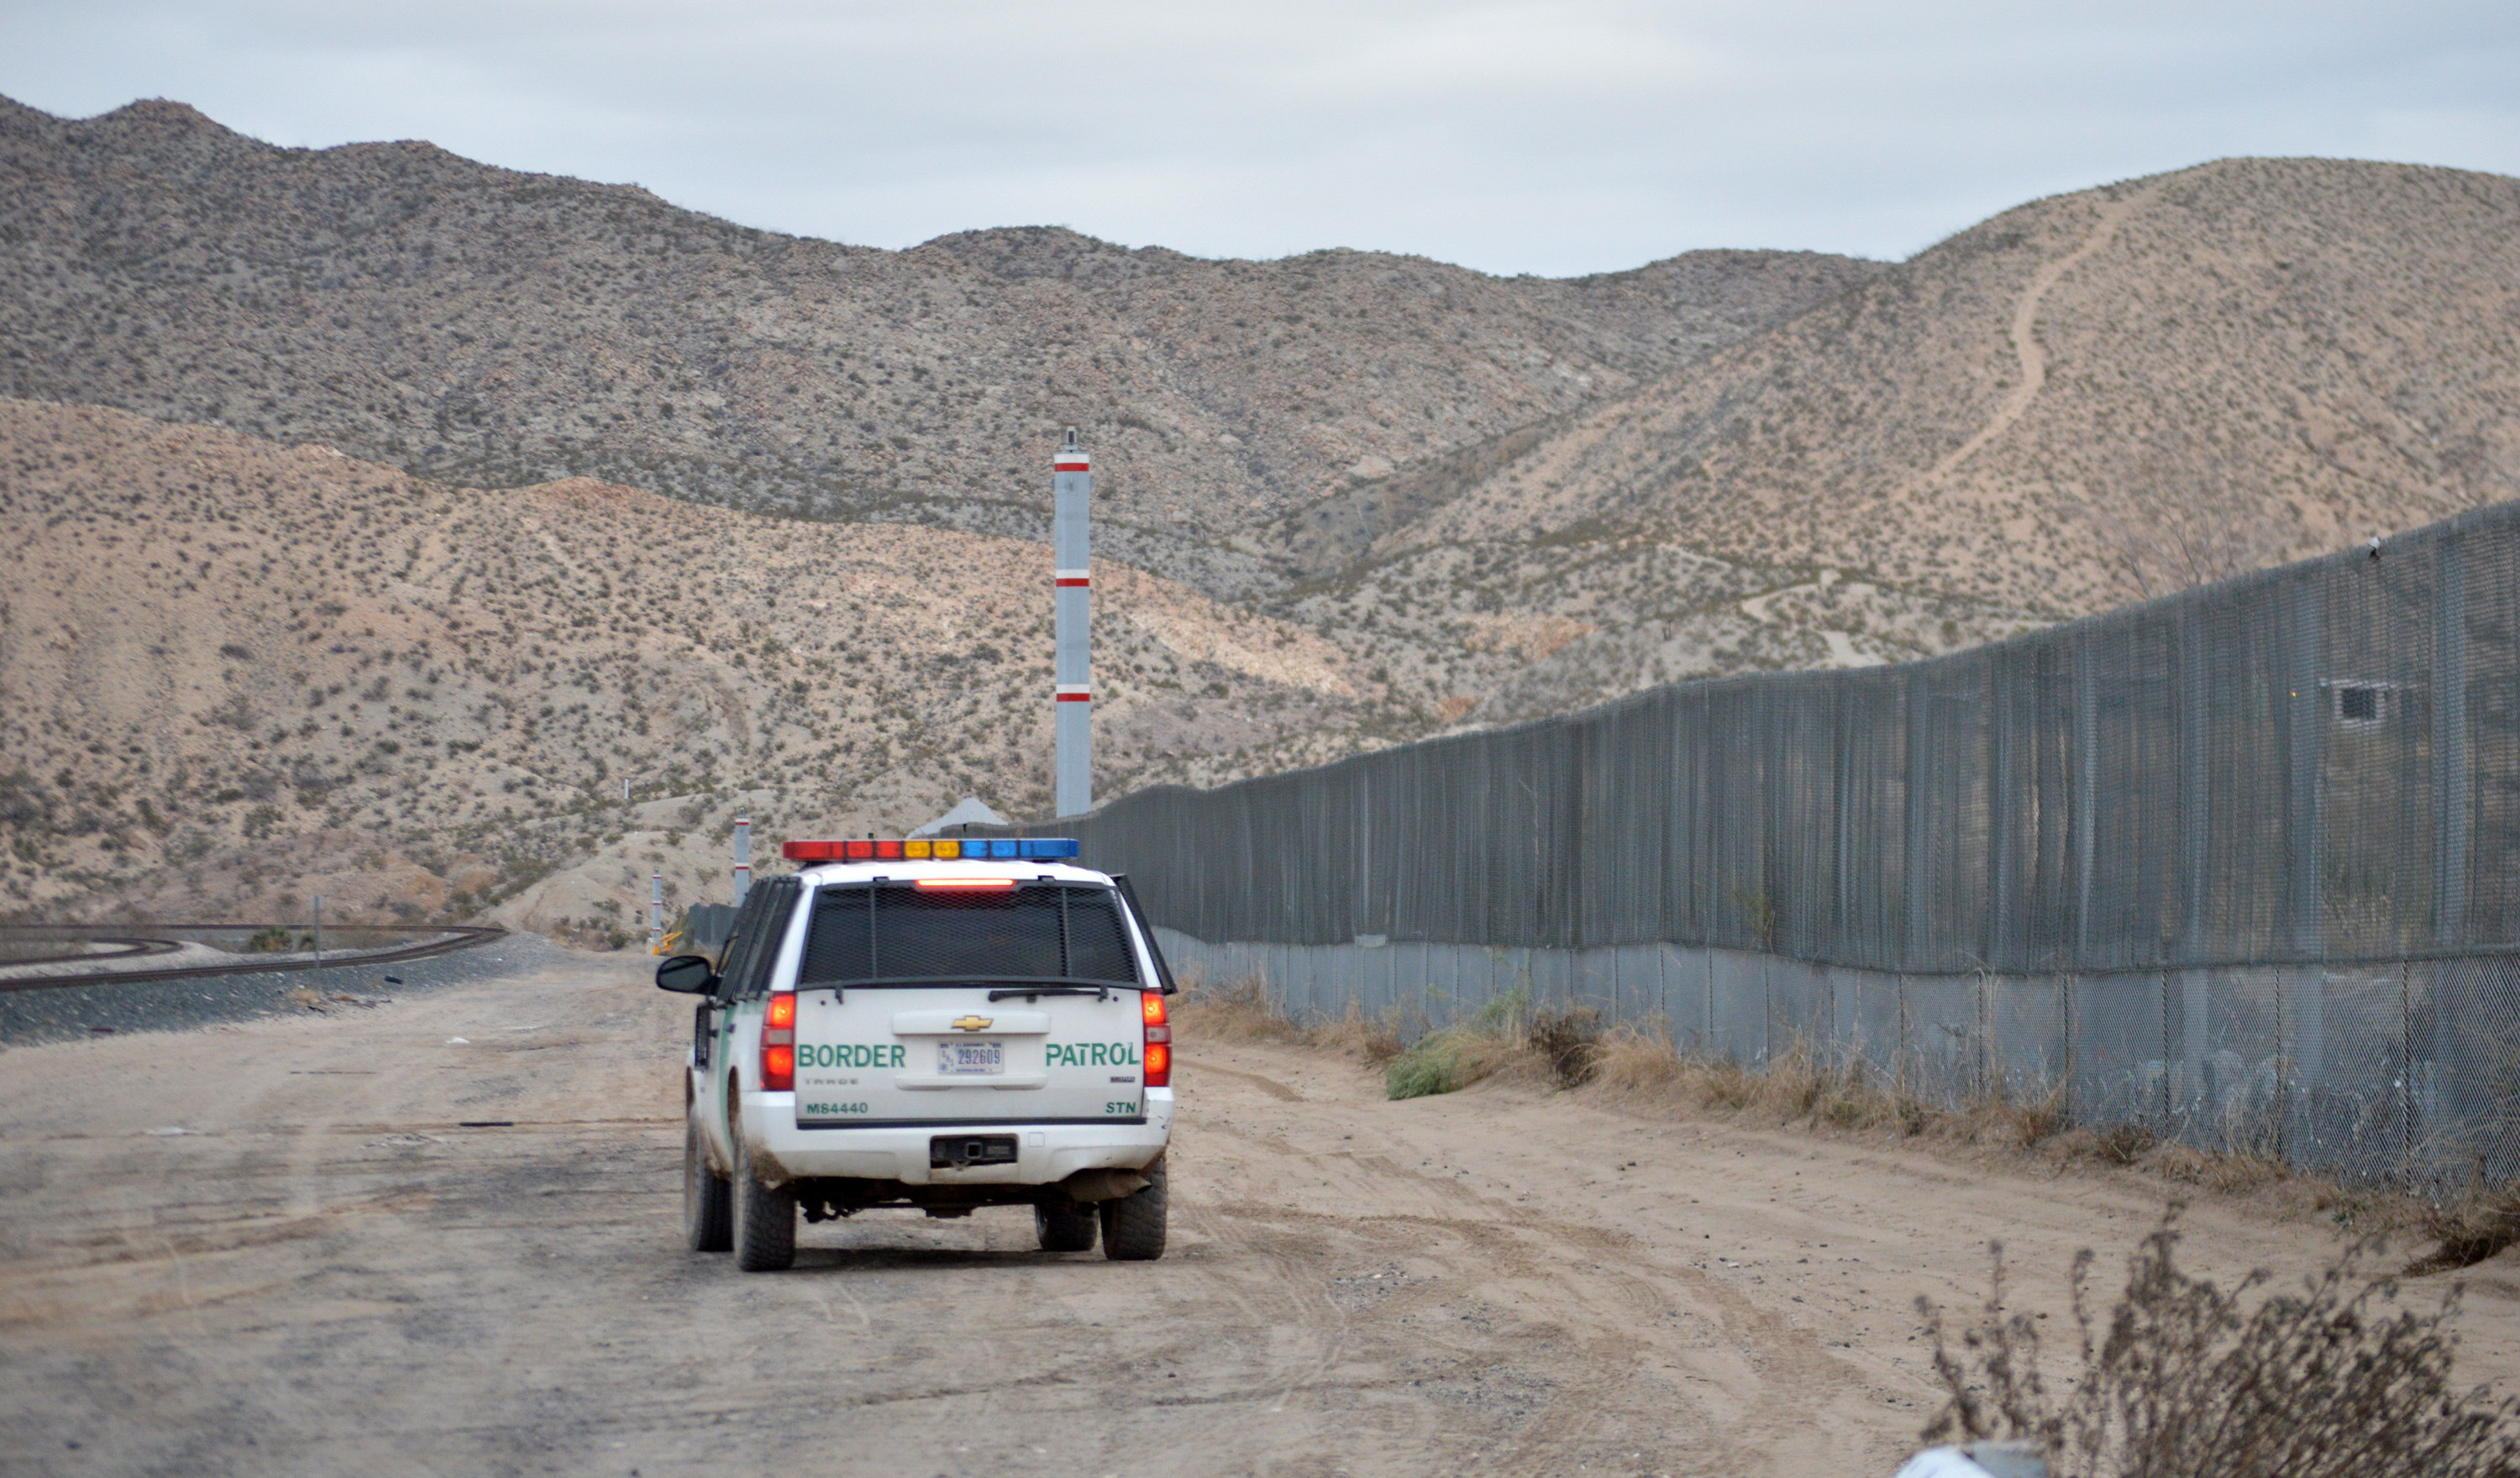 A U.S. Border Patrol agent drives near the U.S.-Mexico border fence in Sunland Park, New Mexico, Jan. 4, 2016.